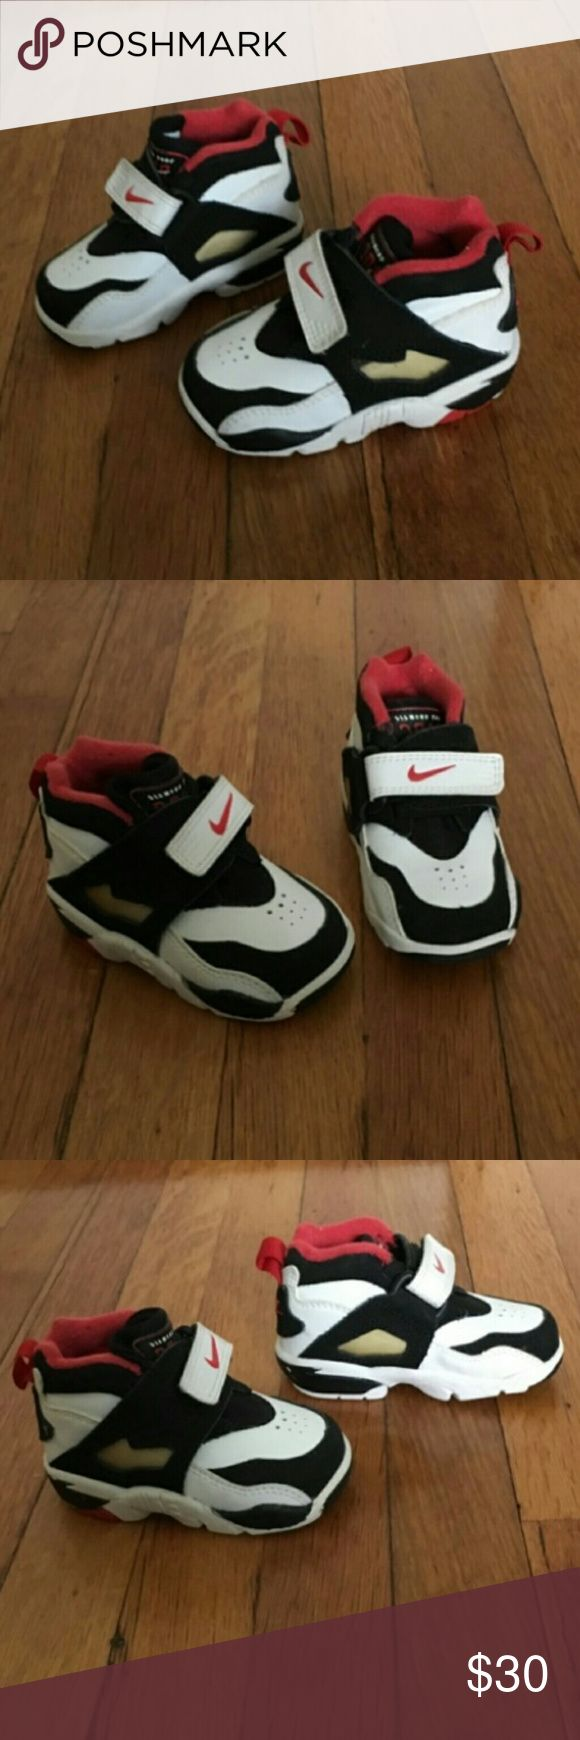 Nike Diamond Turf 2010 LeBron James Sneaker Shoes These baby/toddler shoes have never been worn outside and my son was such a fat baby they never fit him! The black on the back is not perfect do not know when that would have happened, photo above. My son destroyed the box. Velcro closure.  Super cute shoes and you can buy matching ones in adult size. I love matching shoes! Nike Shoes